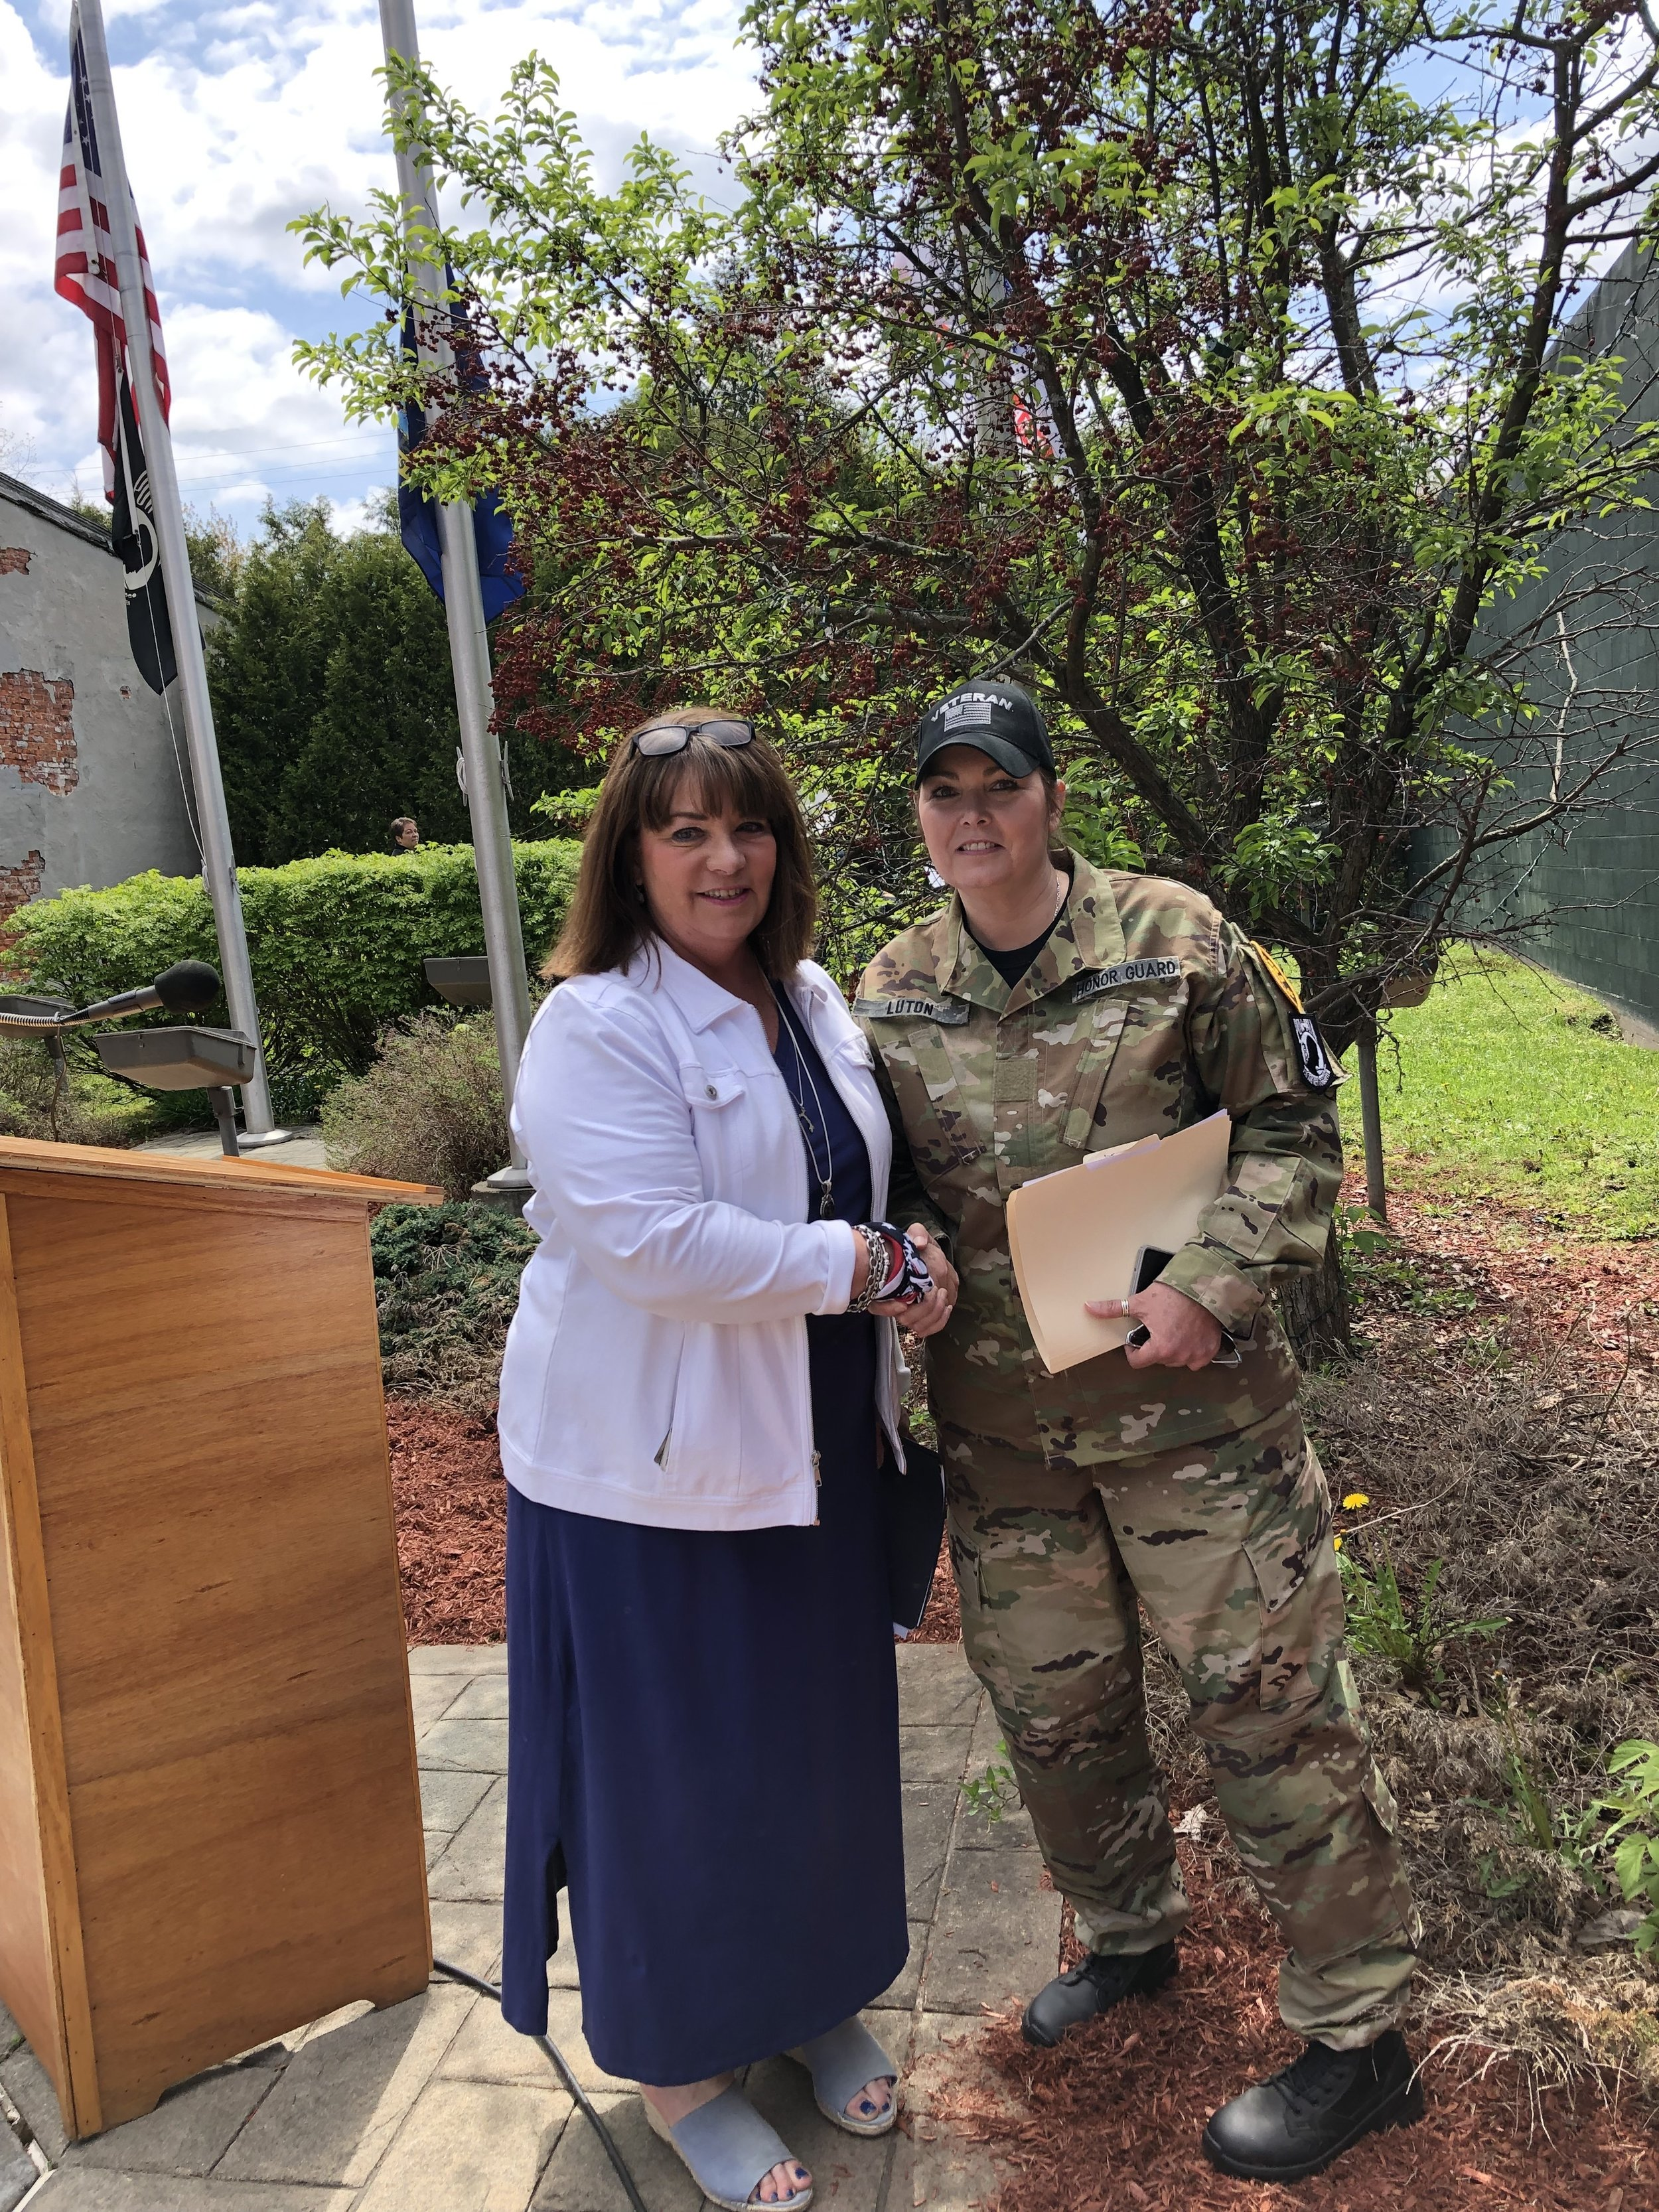 VFW Post Commander Tracy Luton and host of Monday's Memorial Day ceremonies at the veterans' park on Park St. congratulates Guest Speaker and Supervisor Patti Littlefield on a very meaningful address she delivered.